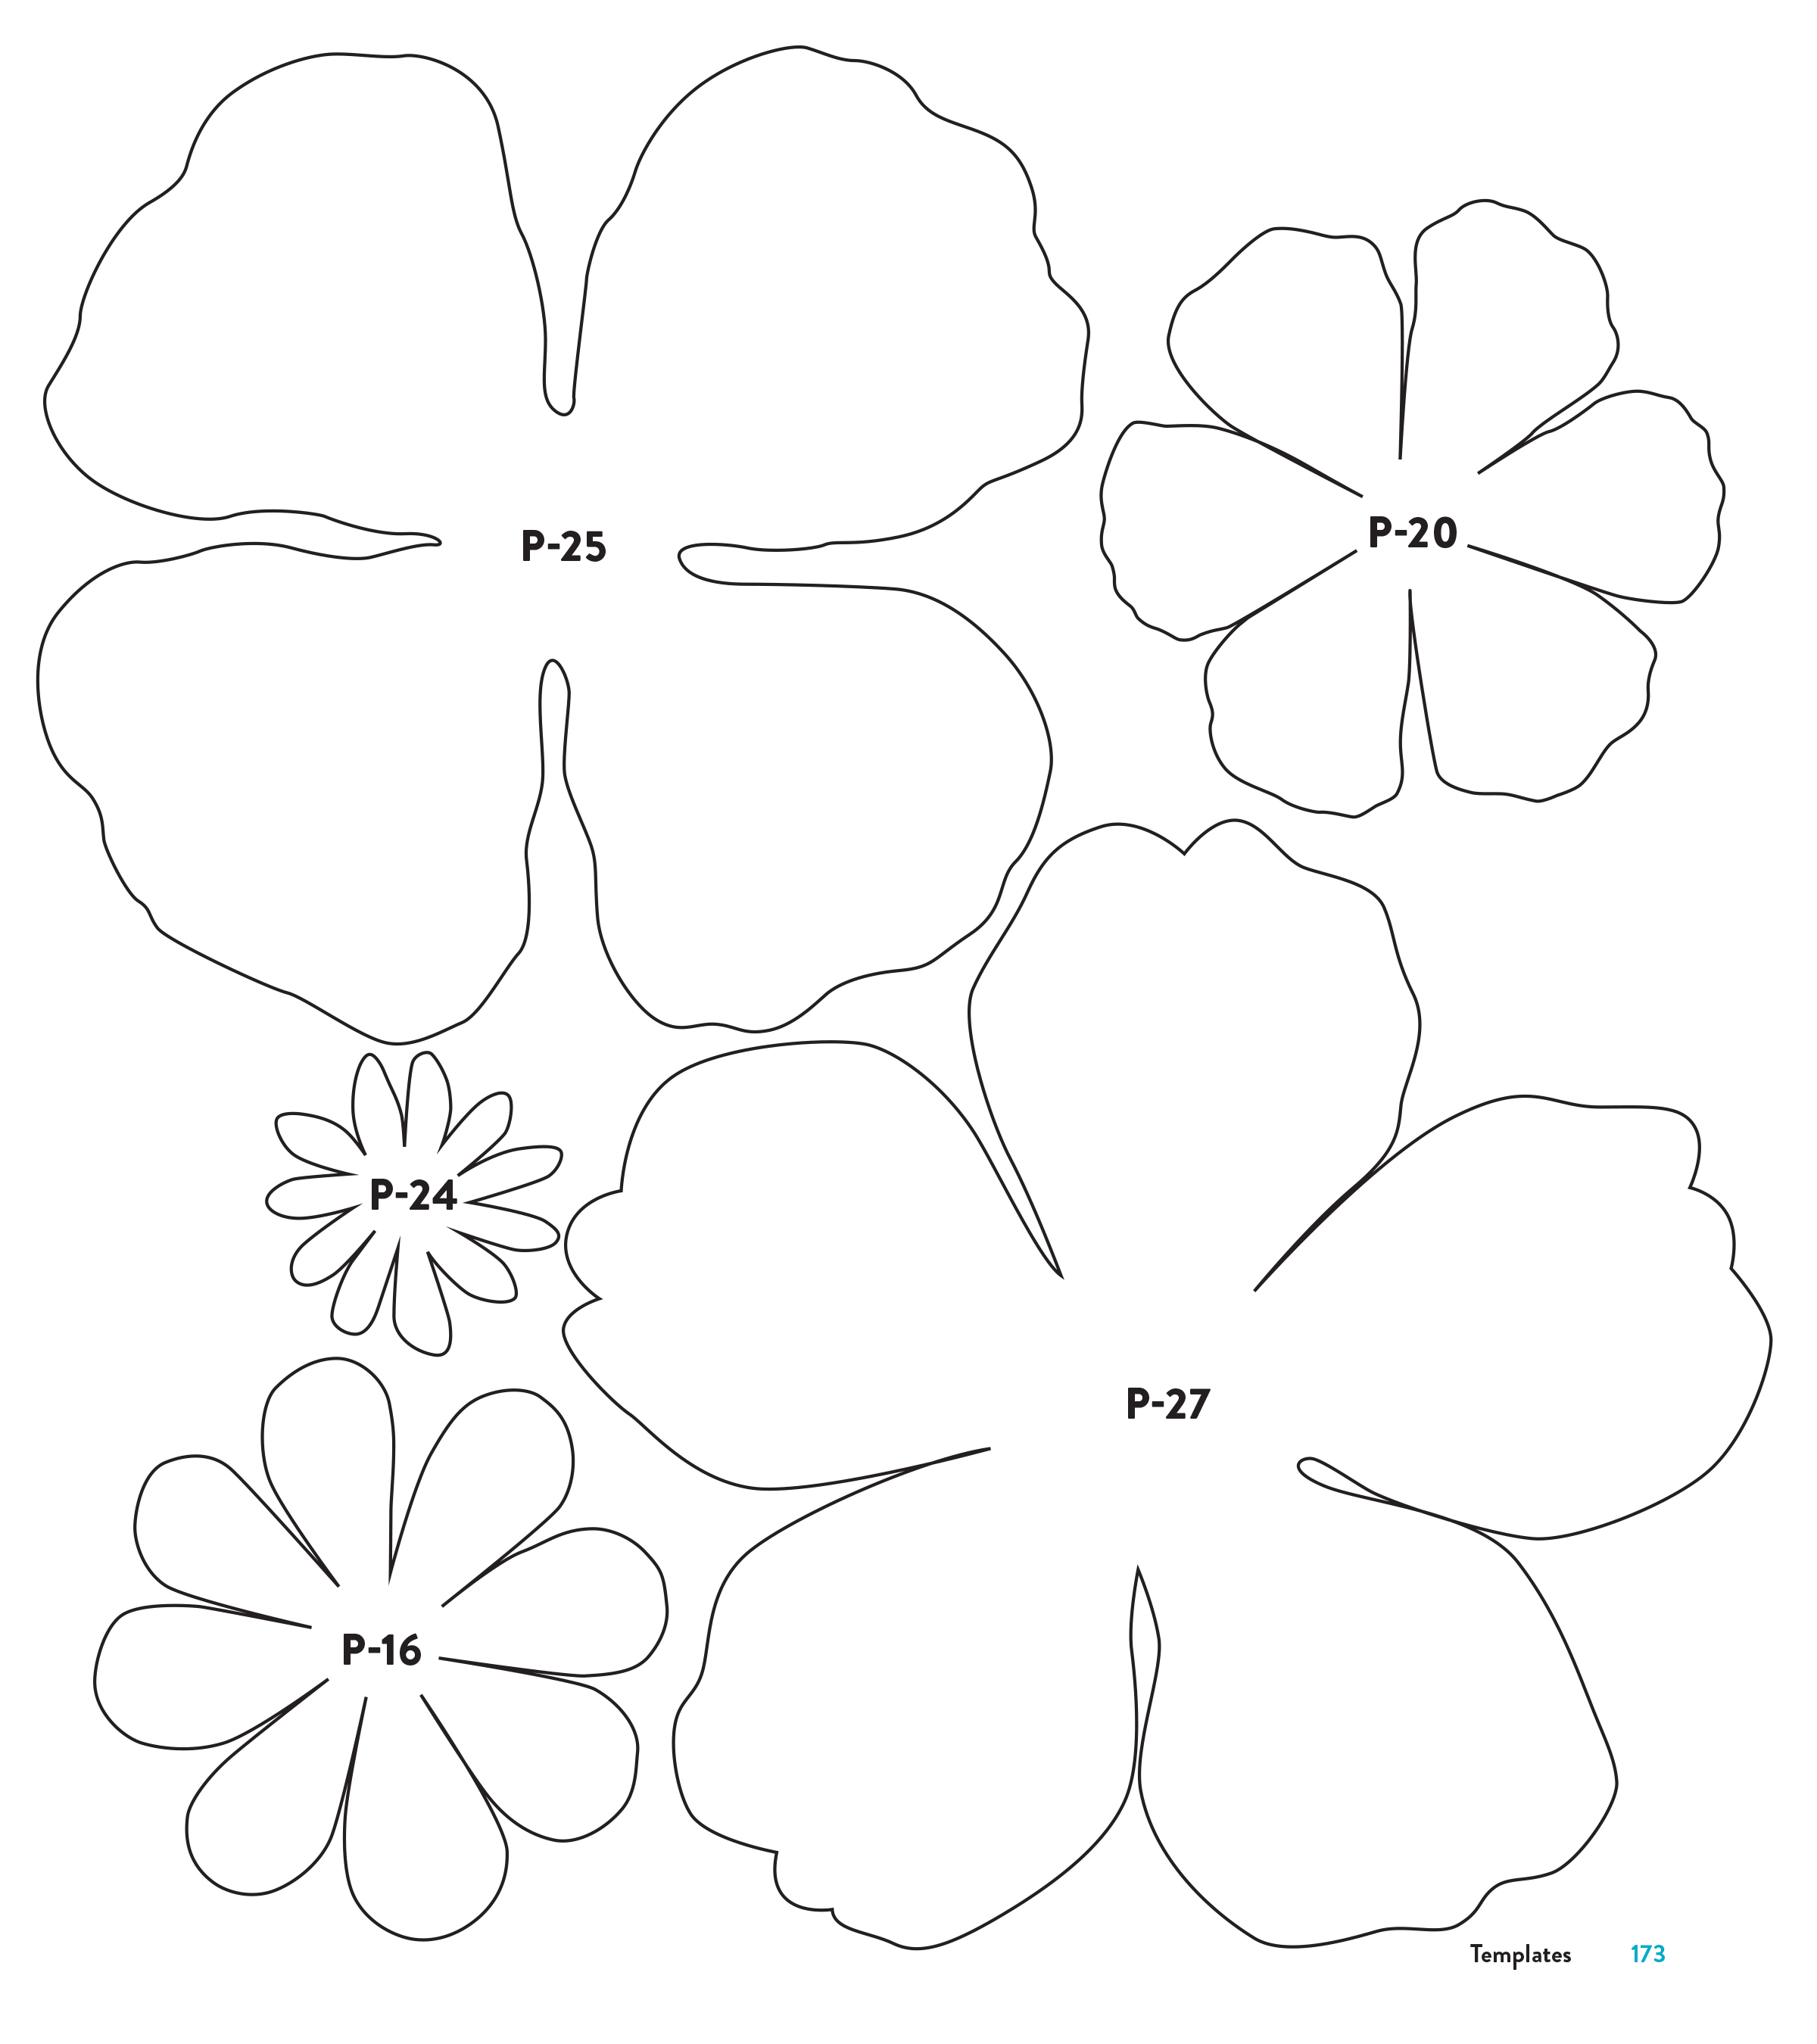 These Paper Flower Petal Templates Were Made Available For Kindle Readers